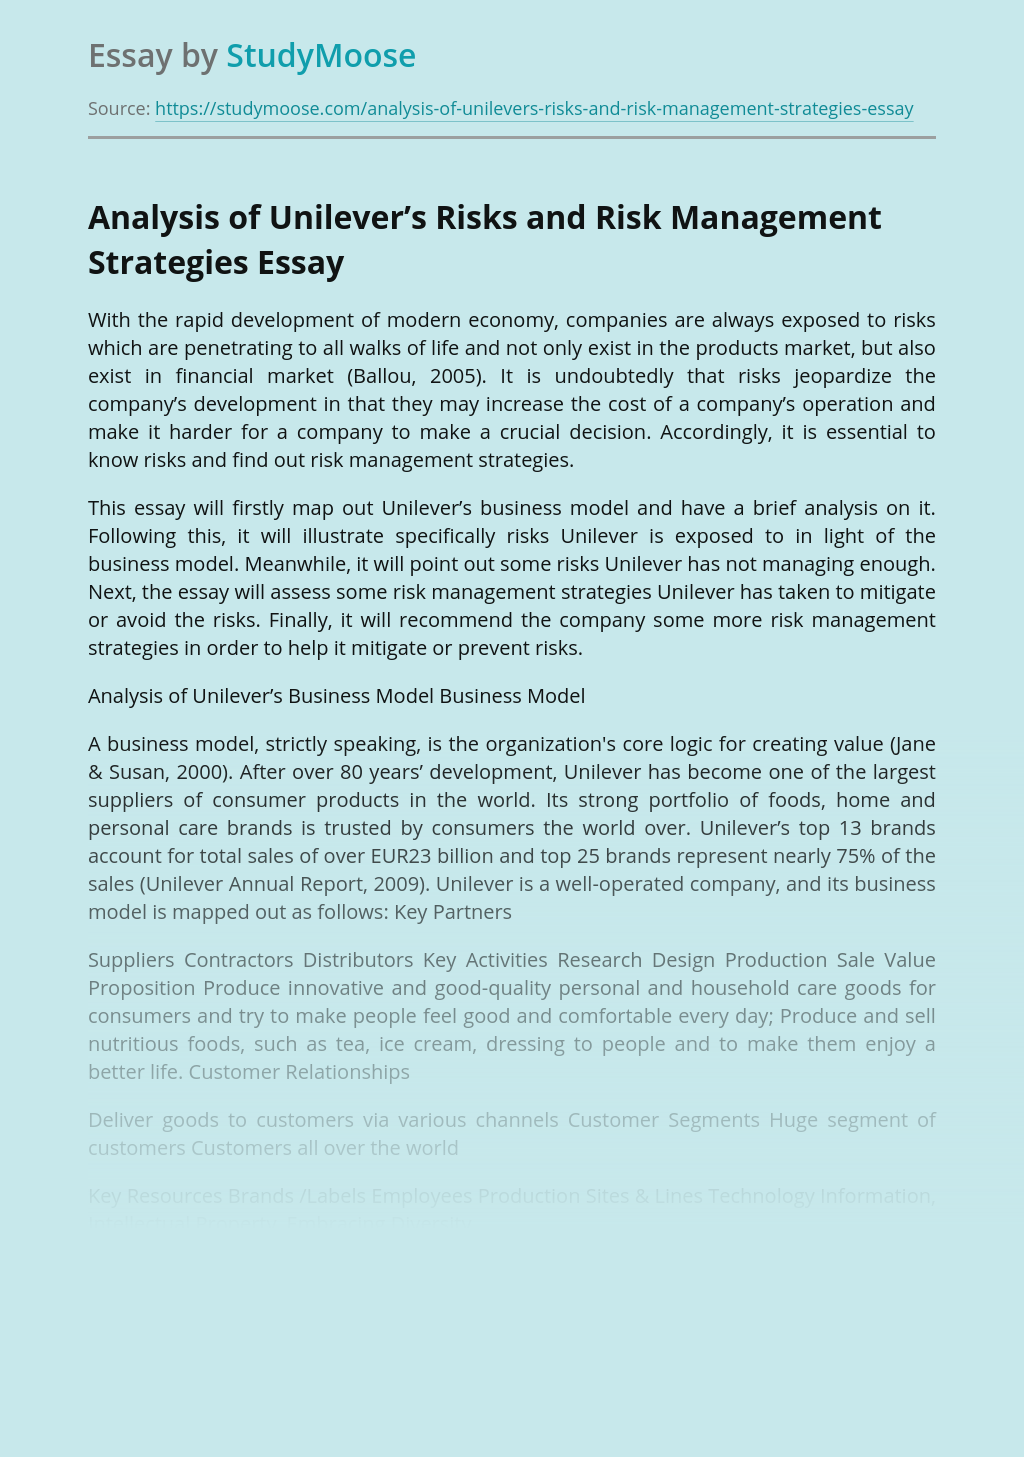 Analysis of Unilever's Risks and Risk Management Strategies